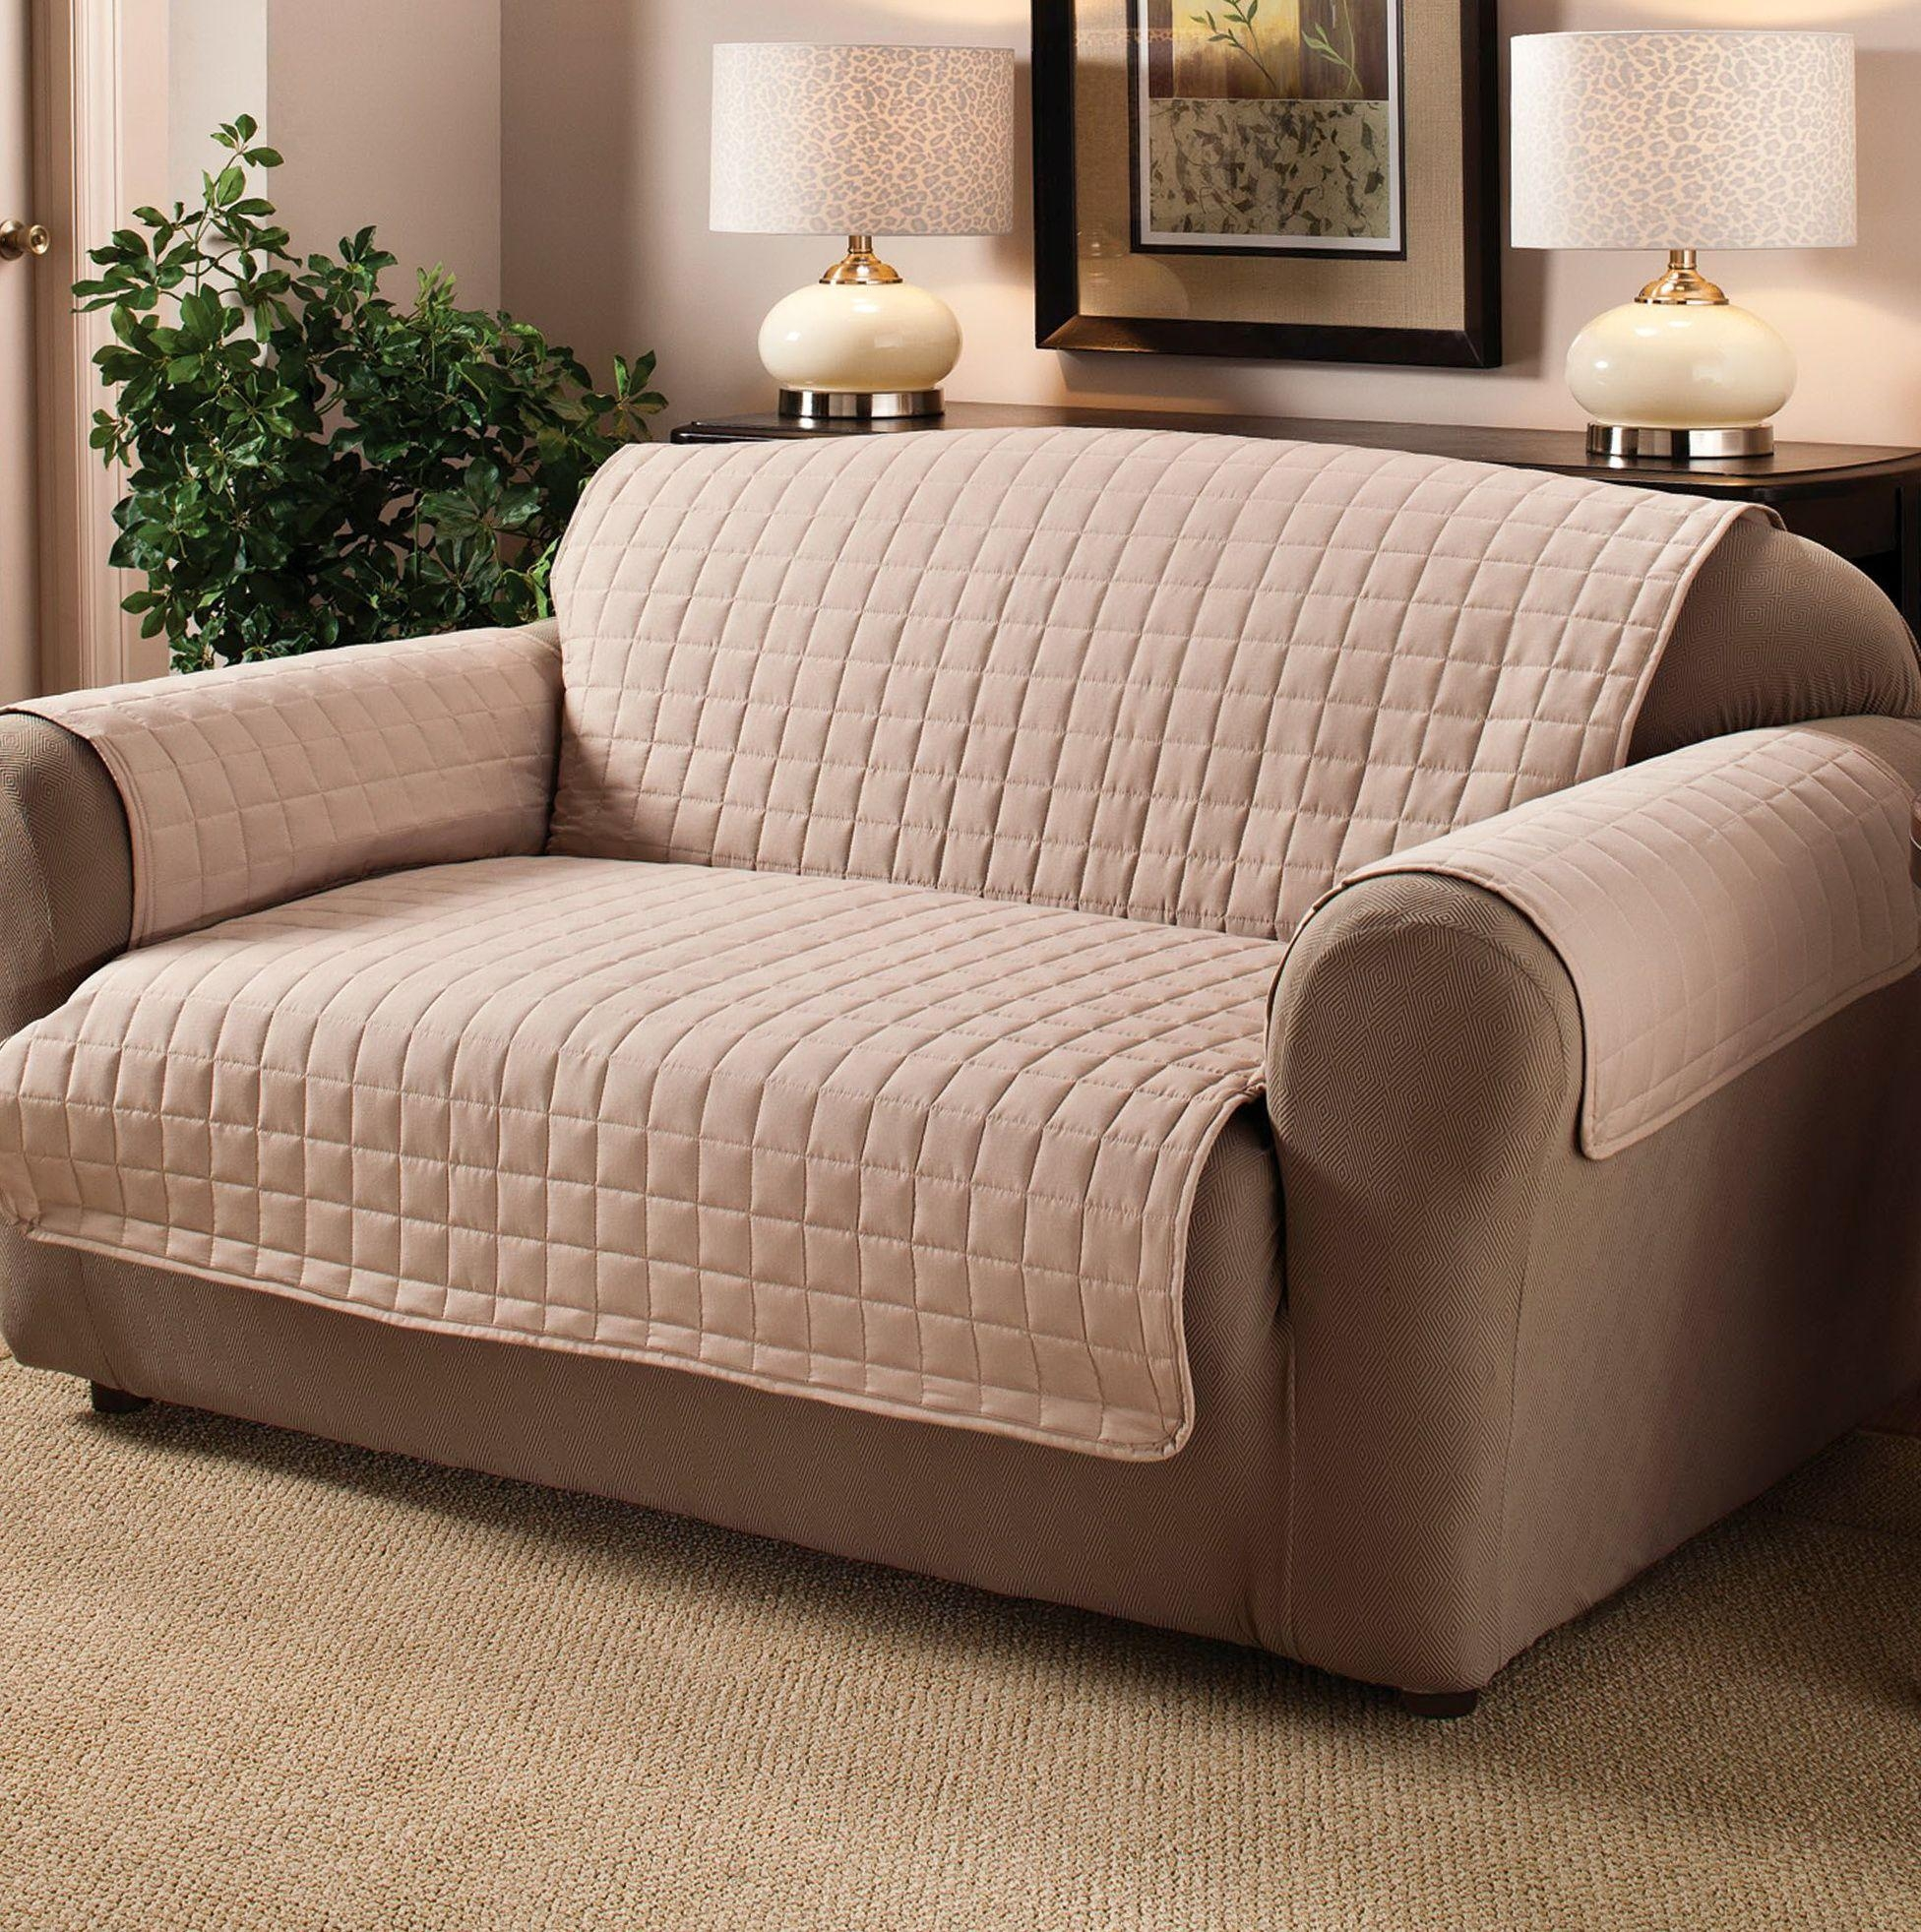 Furniture: Sectional Sofa Covers Walmart | Sofa Covers At Walmart Intended For Slipcover For Leather Sectional Sofas (View 12 of 21)